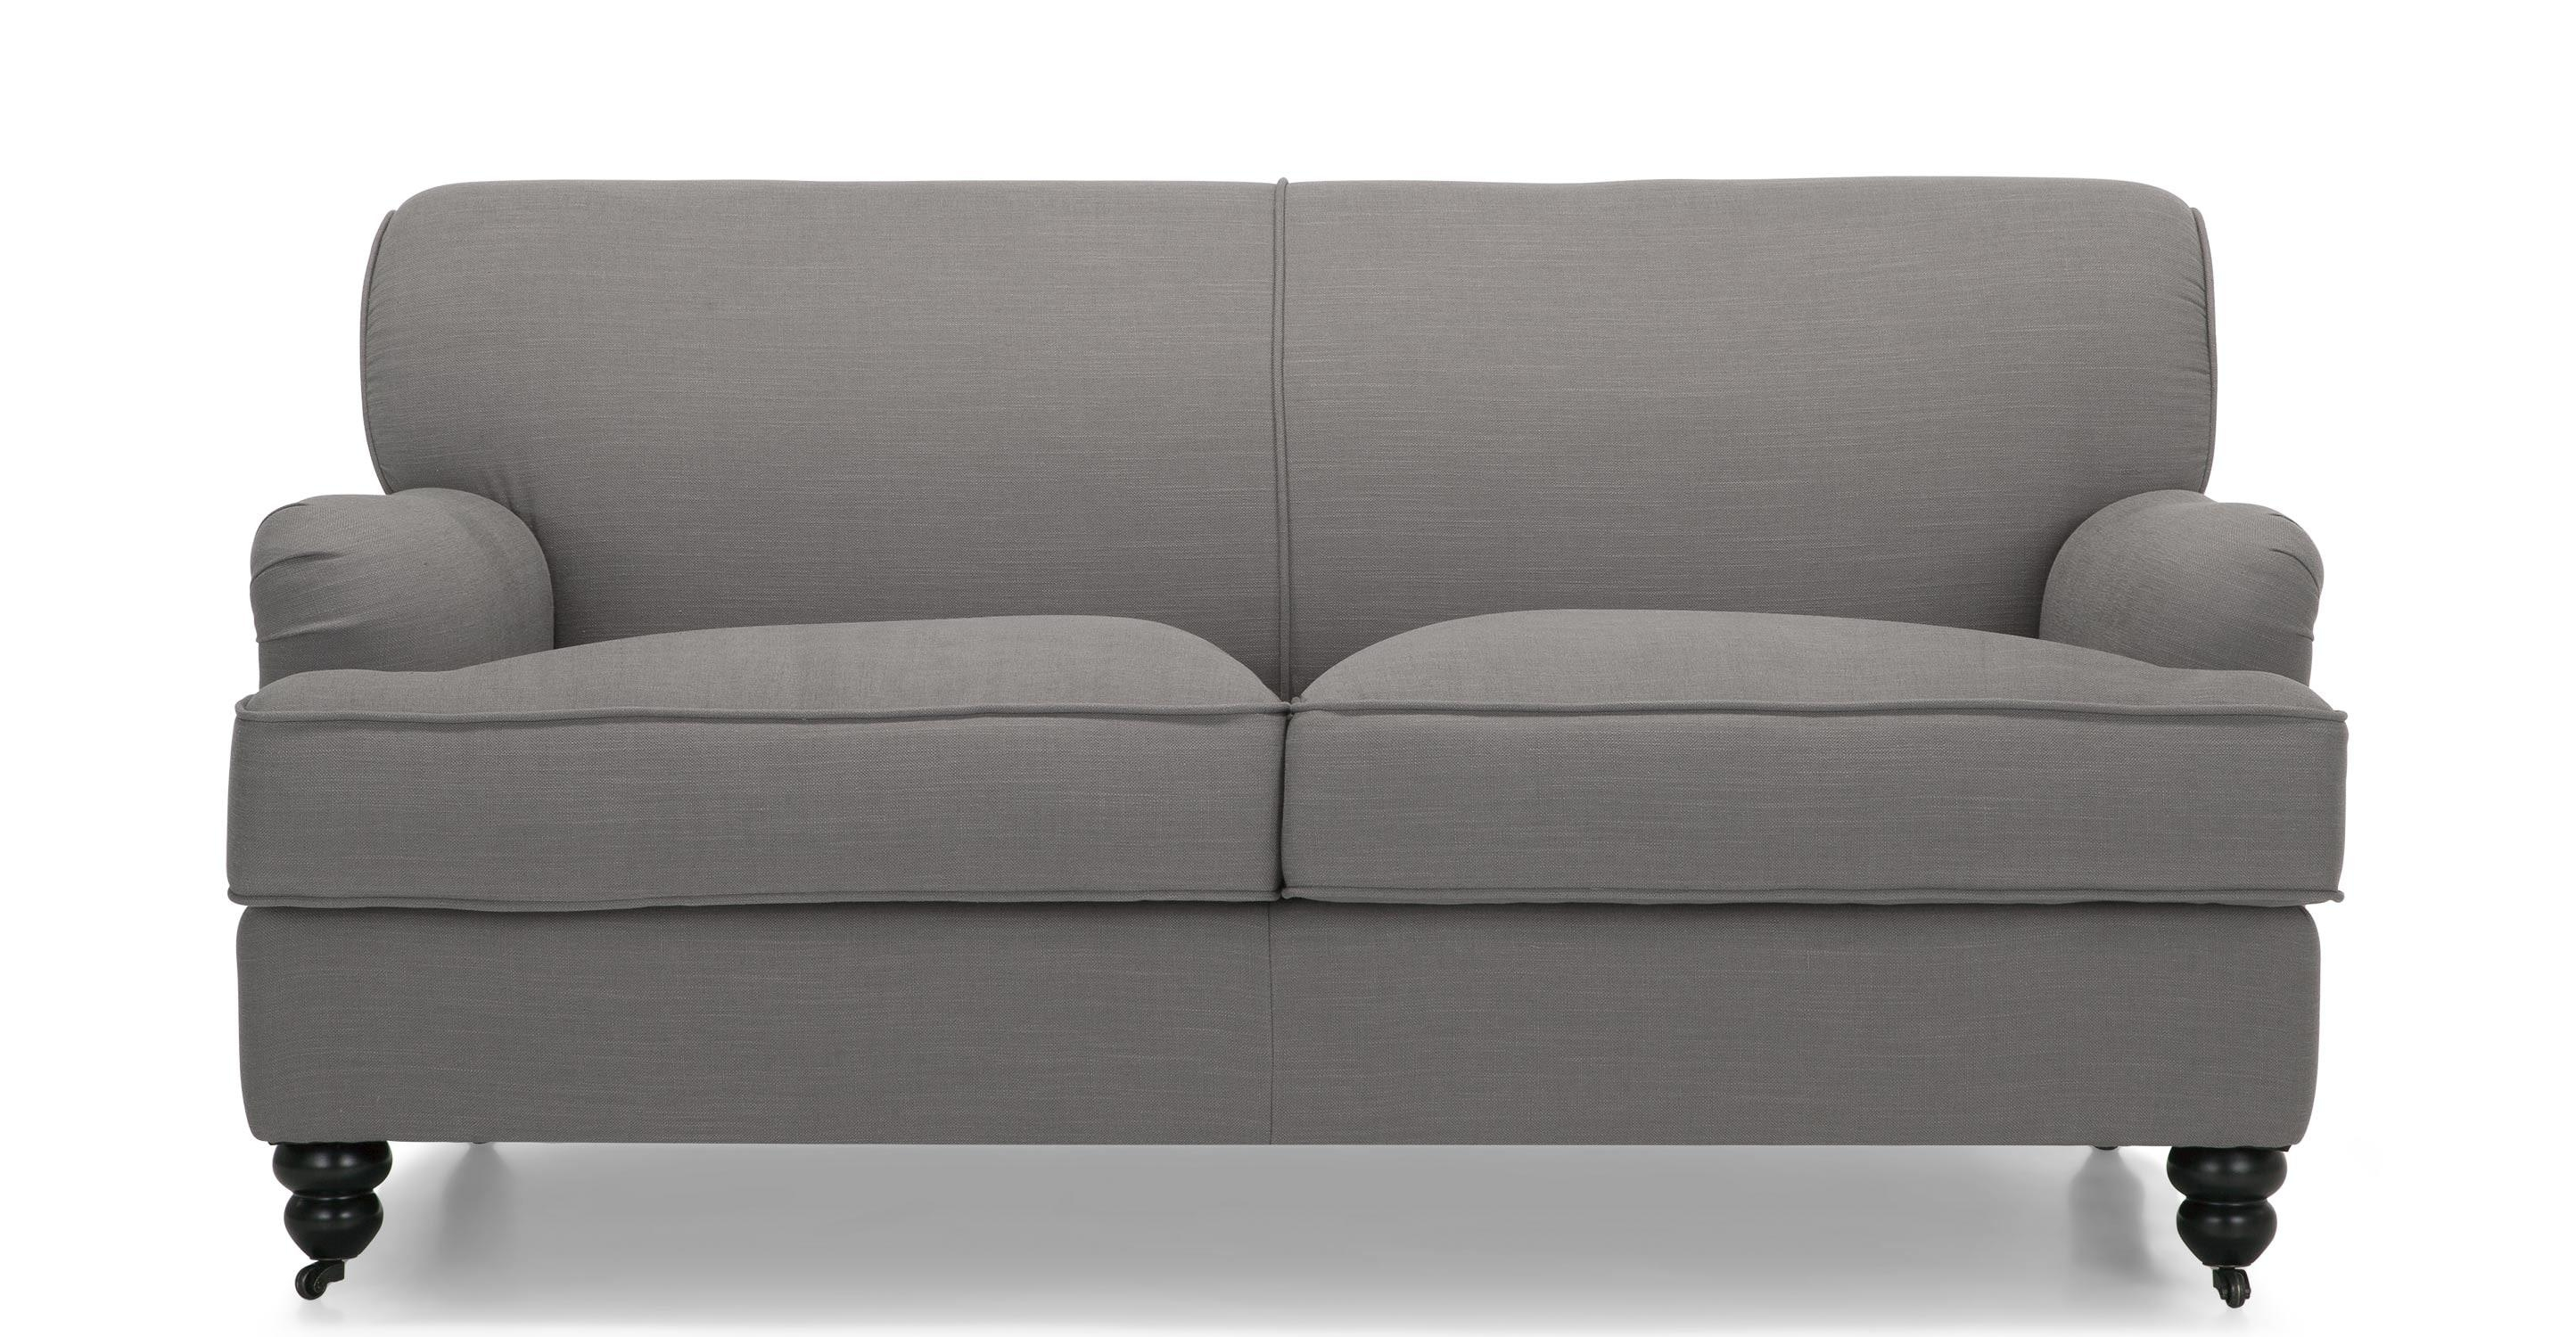 Orson 2 Seater Sofa, Graphite Grey | Made Within 2 Seater Sofas (Image 13 of 20)